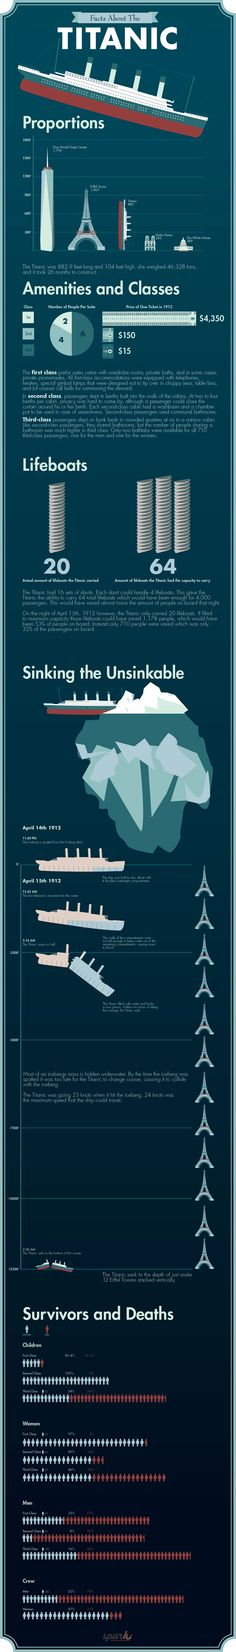 Titanic Facts About the Unsinkable Titanic (Infographic)